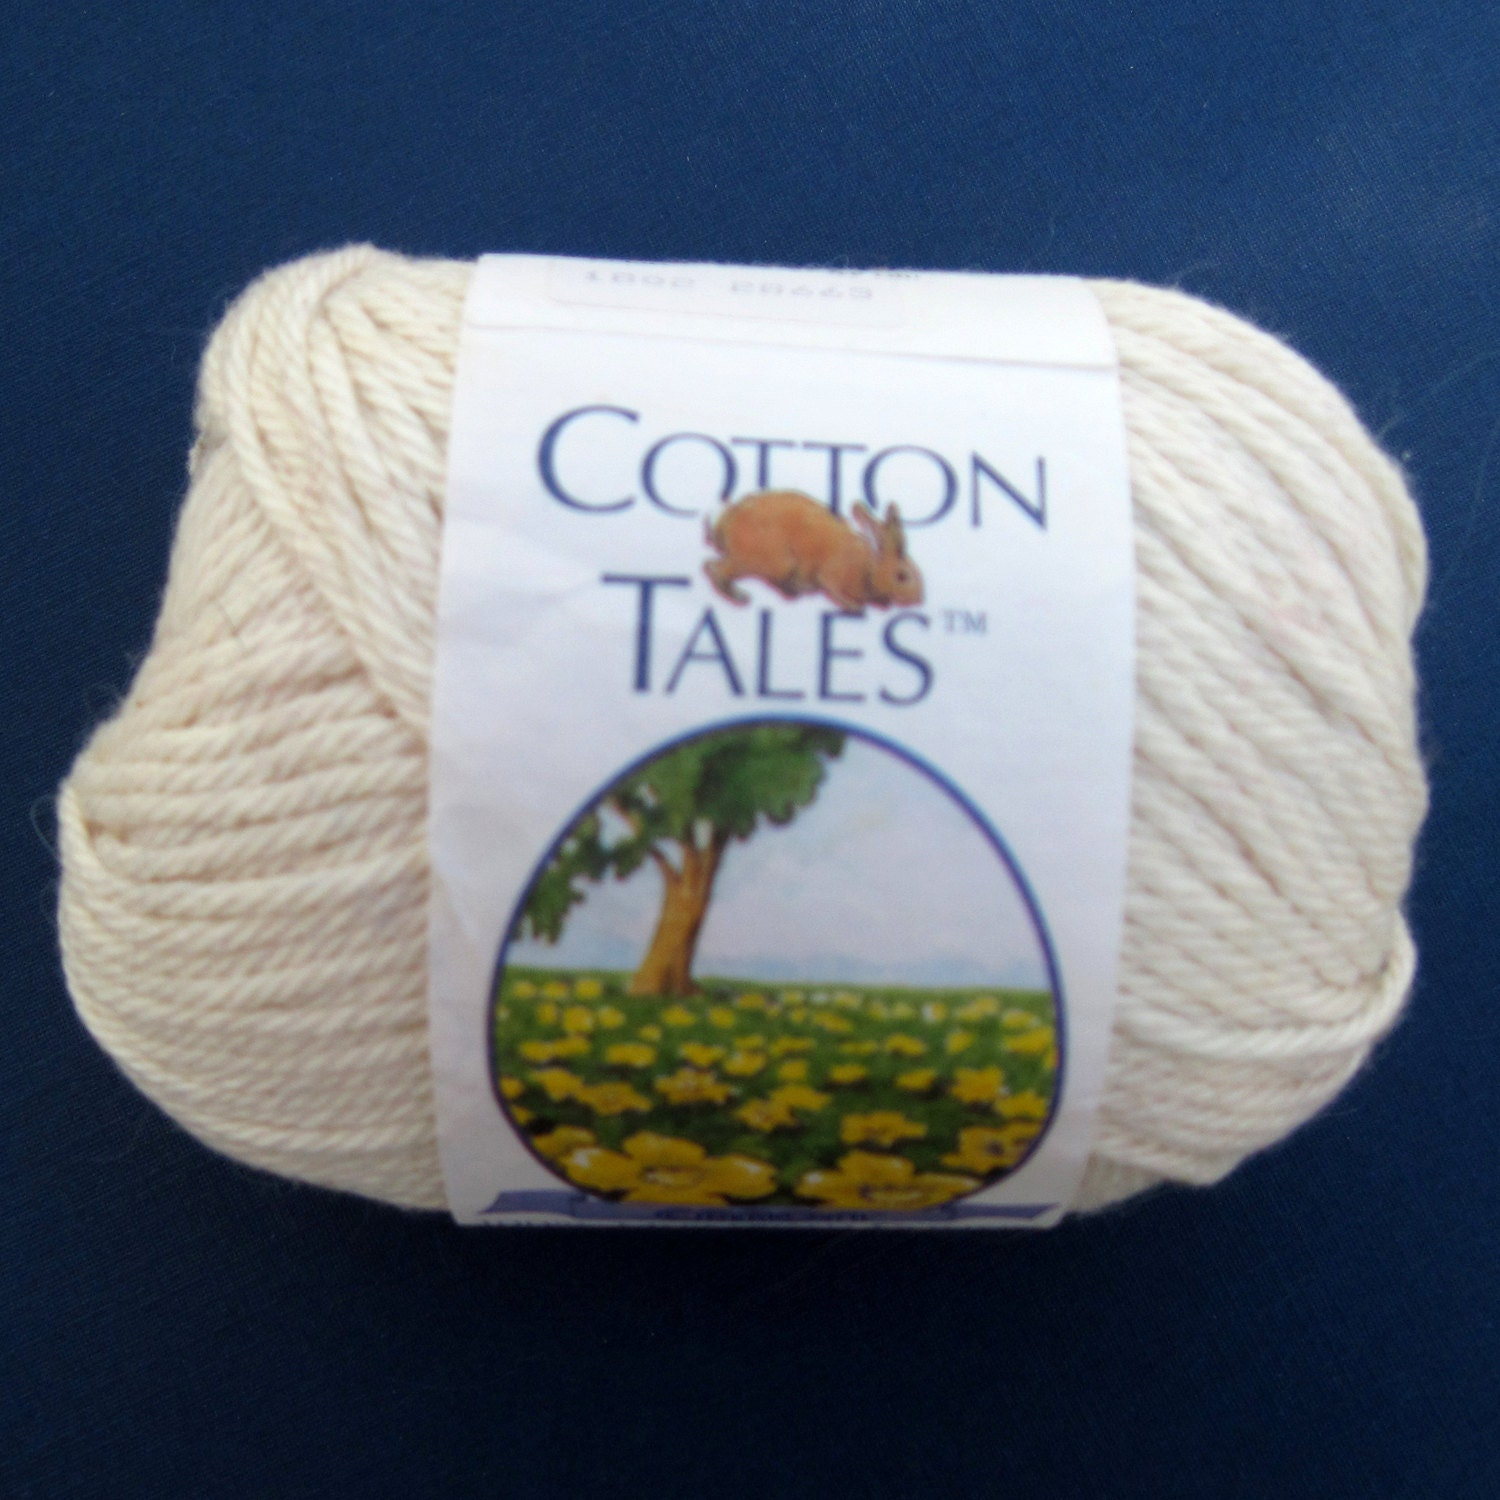 Cotton Yarn Cotton Tales By Caron Worsted Weight 4 By